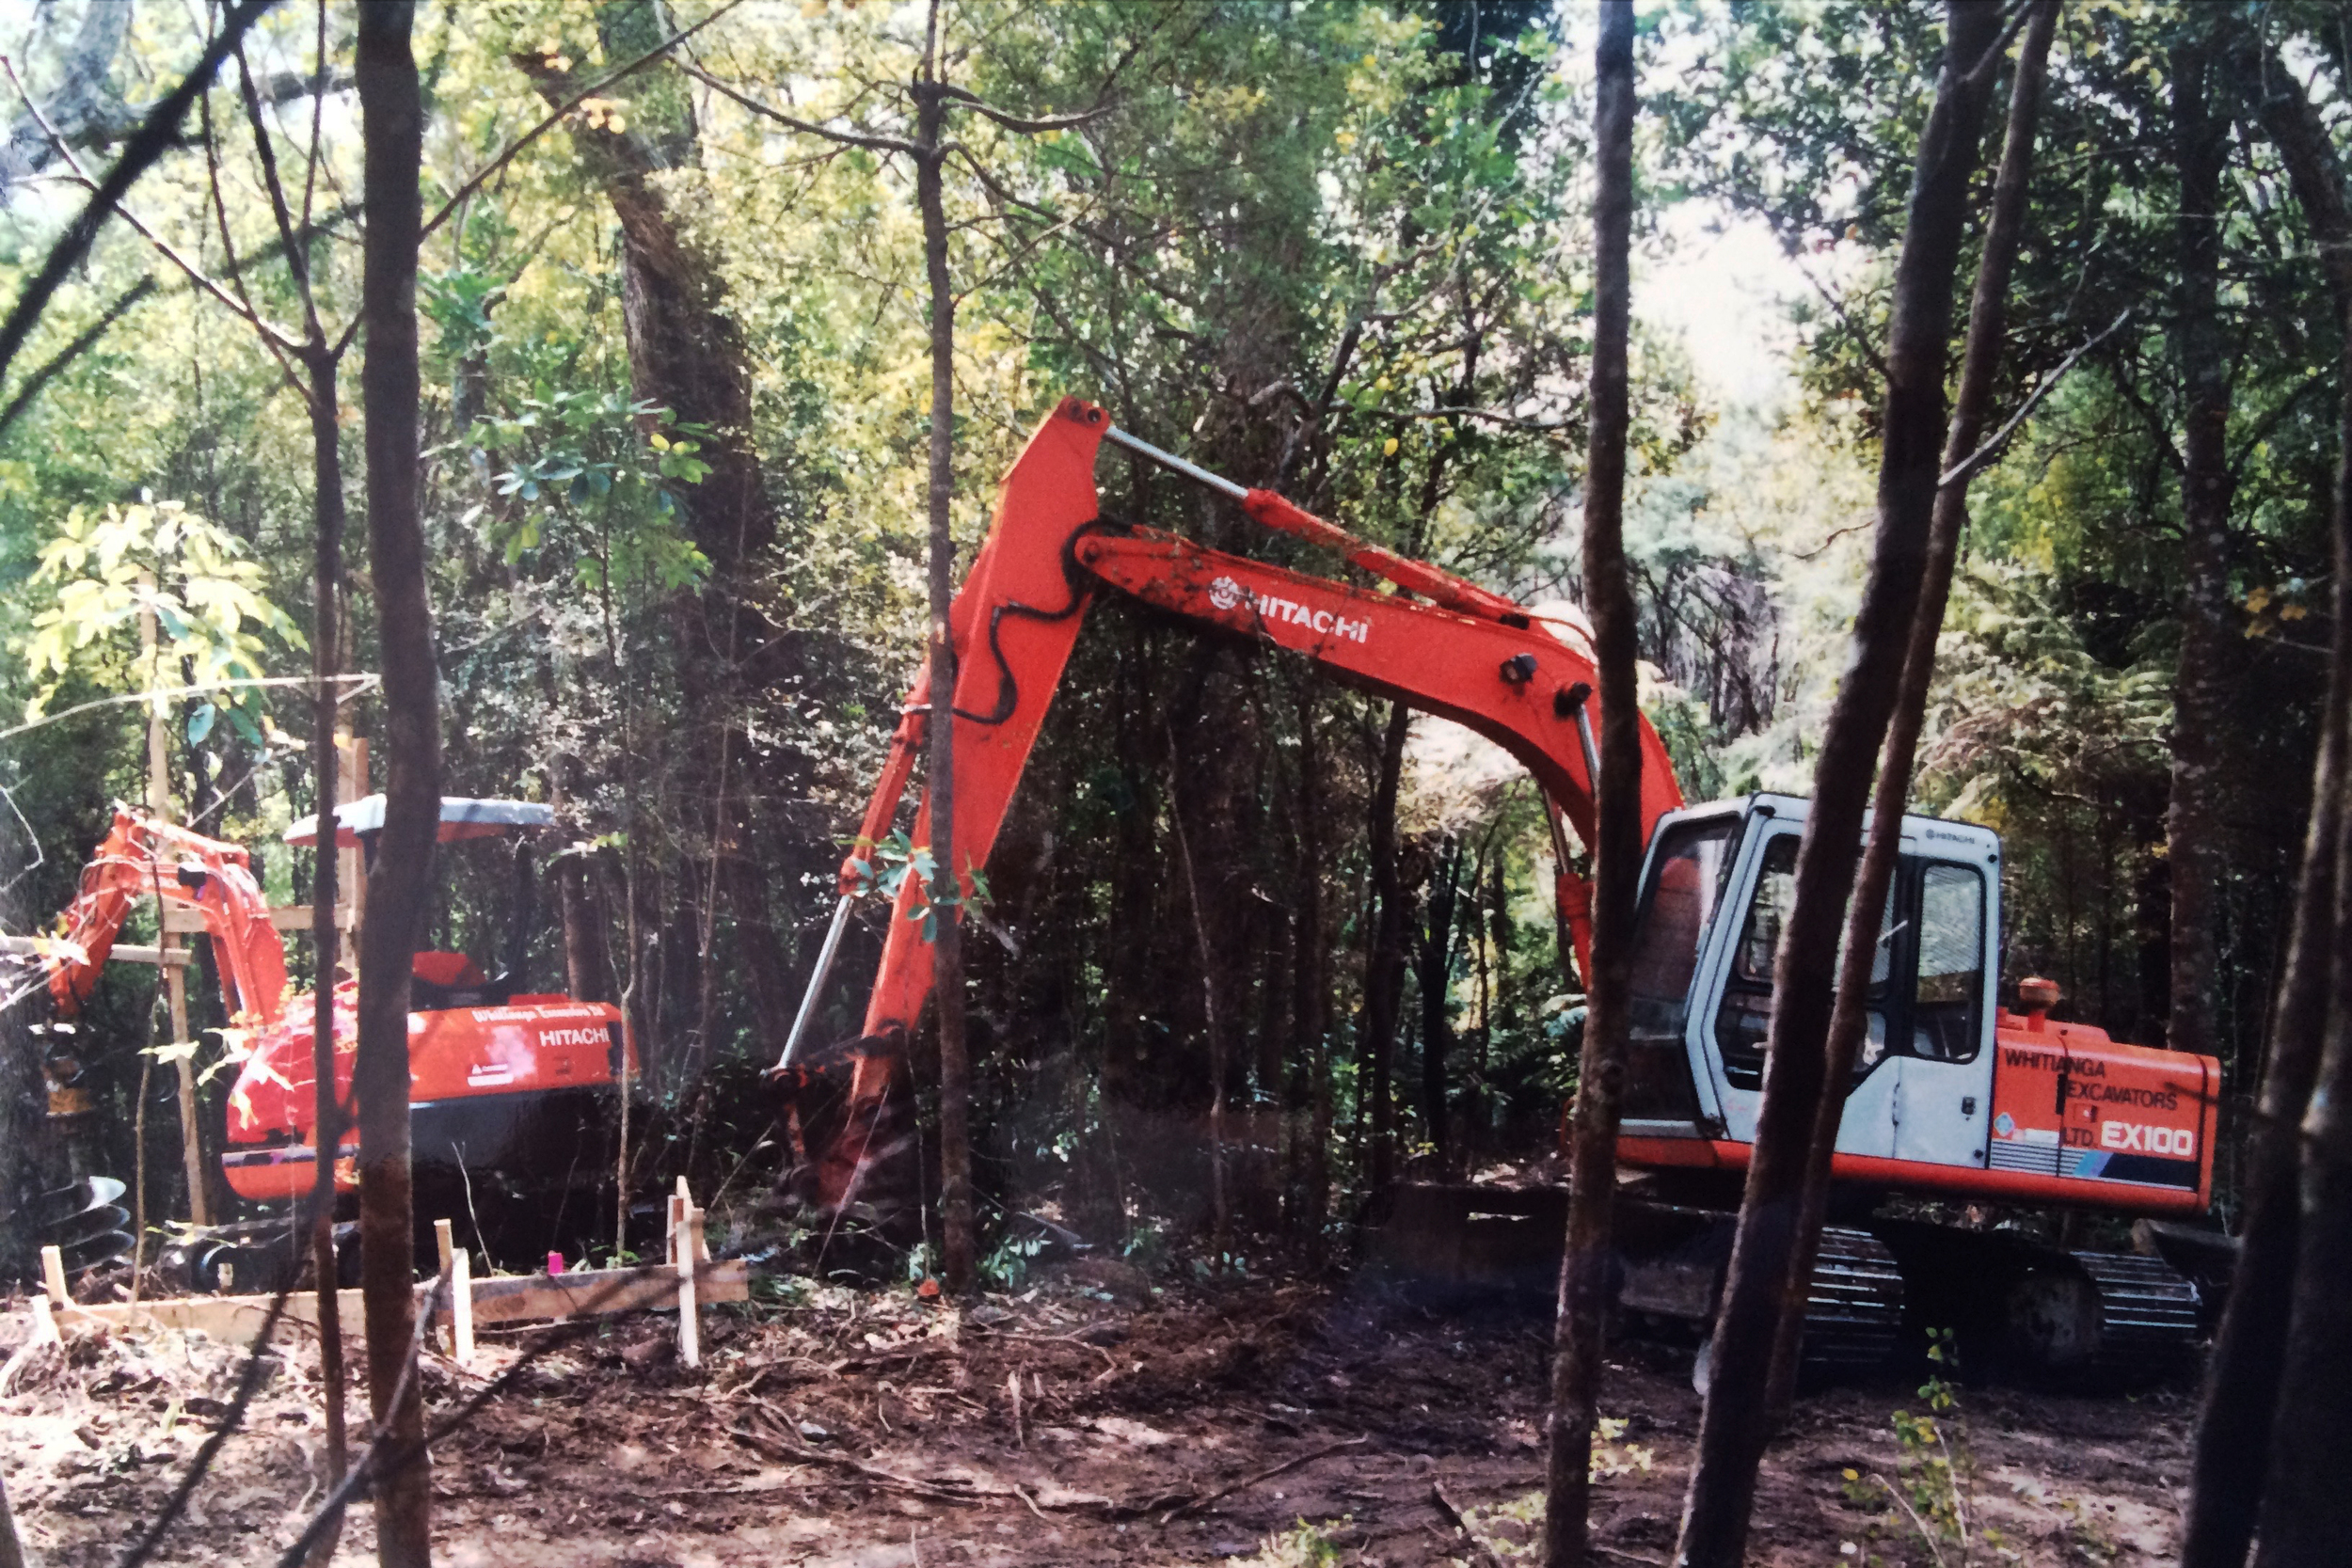 Excavation of plots within the bush for chalets